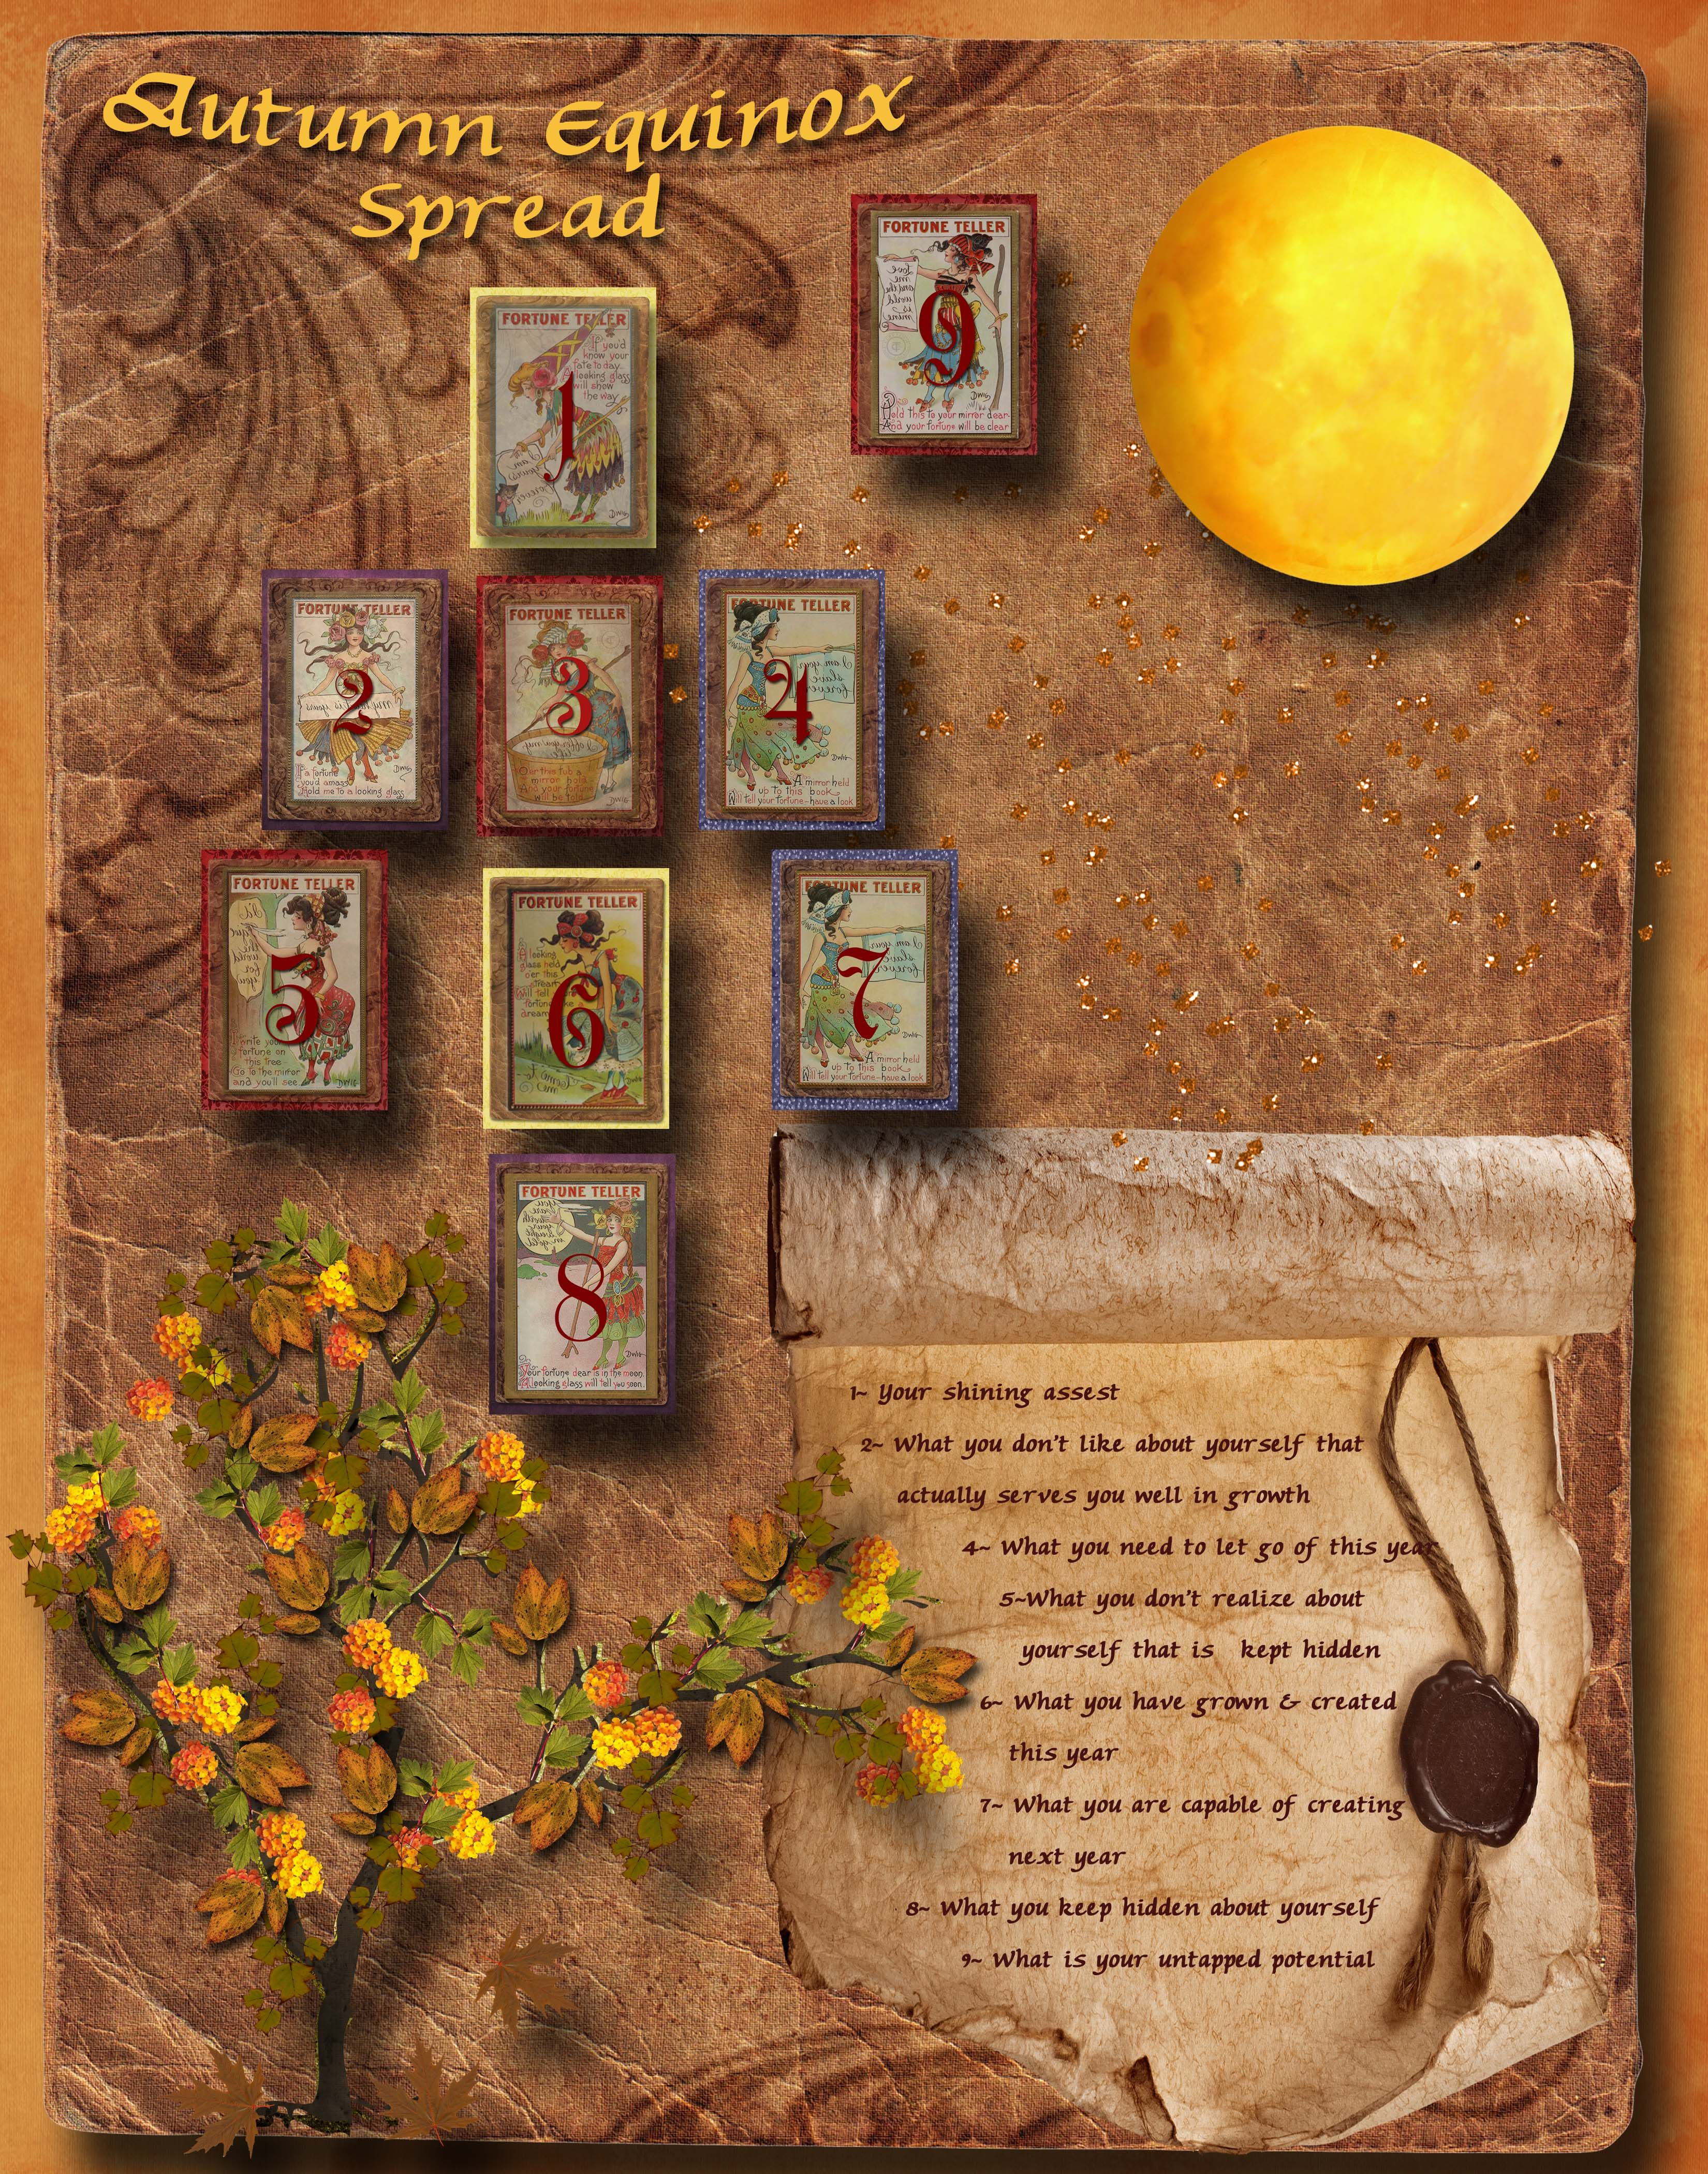 Autumn Equinox Spread (mabon) (tarot) The Missing 3: Fall foliage: What others appreciate as beautiful in you #autumnalequinox